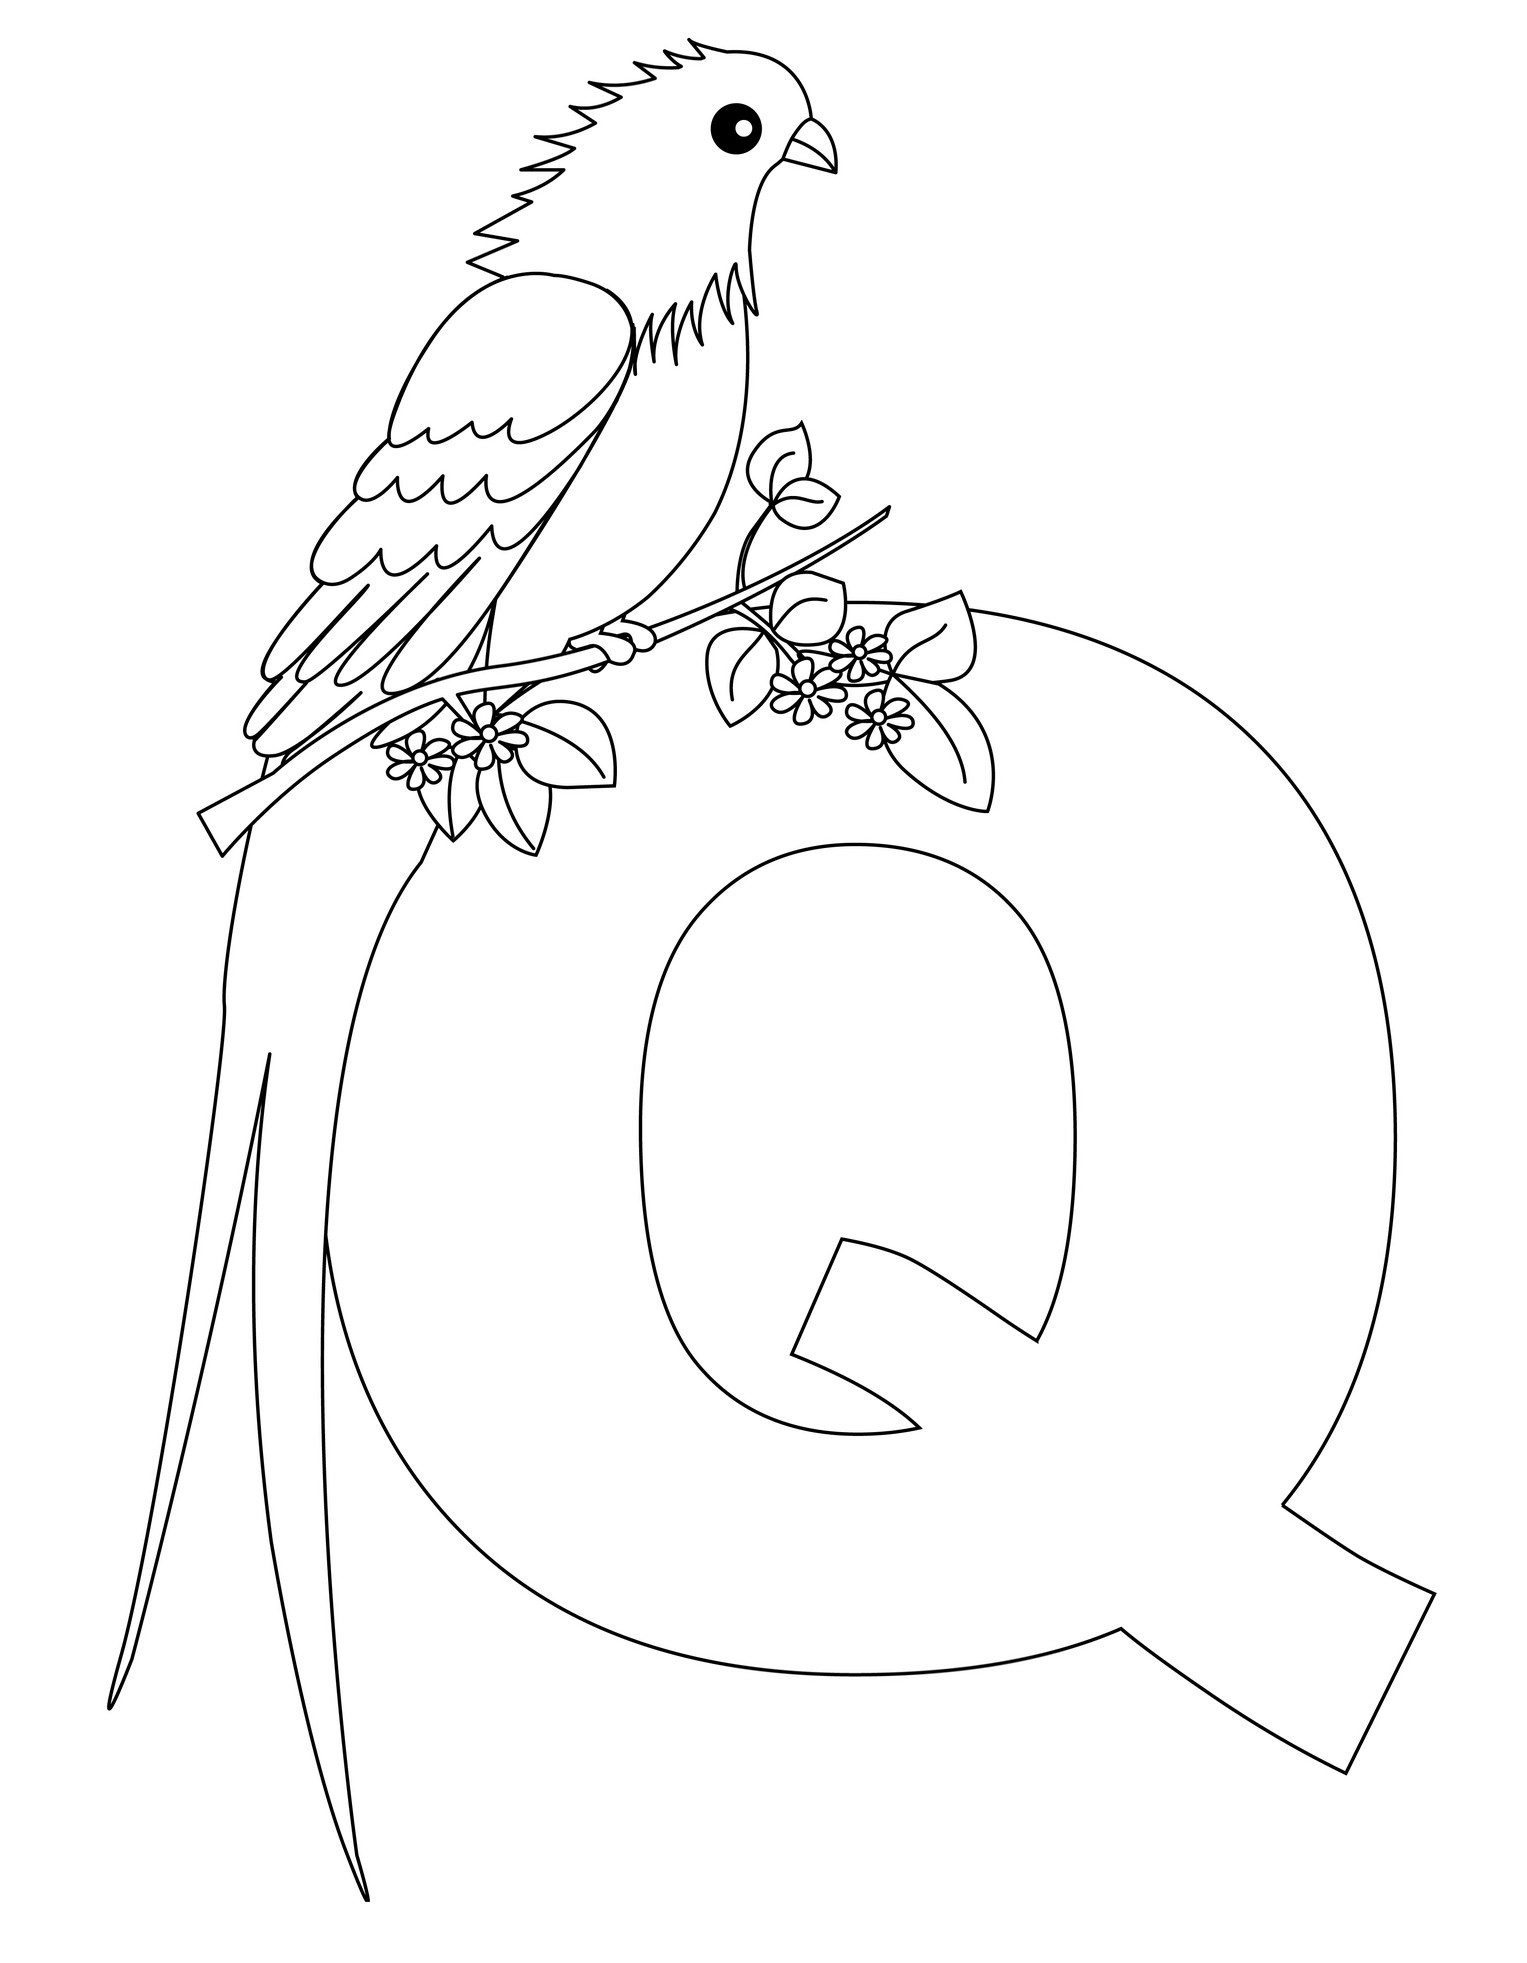 It's just a graphic of Delicate Letter Printable Coloring Pages